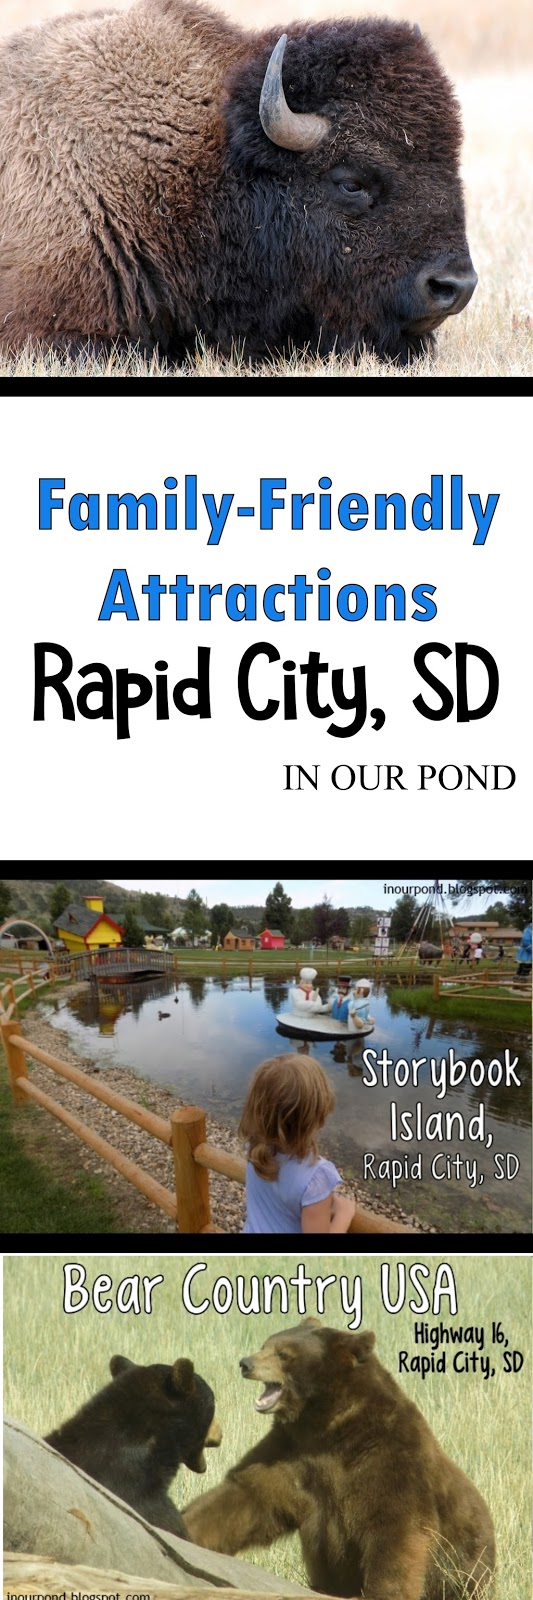 Family-Friendly Attractions near Rapid City, SD from In Our Pond #travel #roadtrip #roadtripkids #family #southdakota #rapidcity #mtrushmore #traveltips